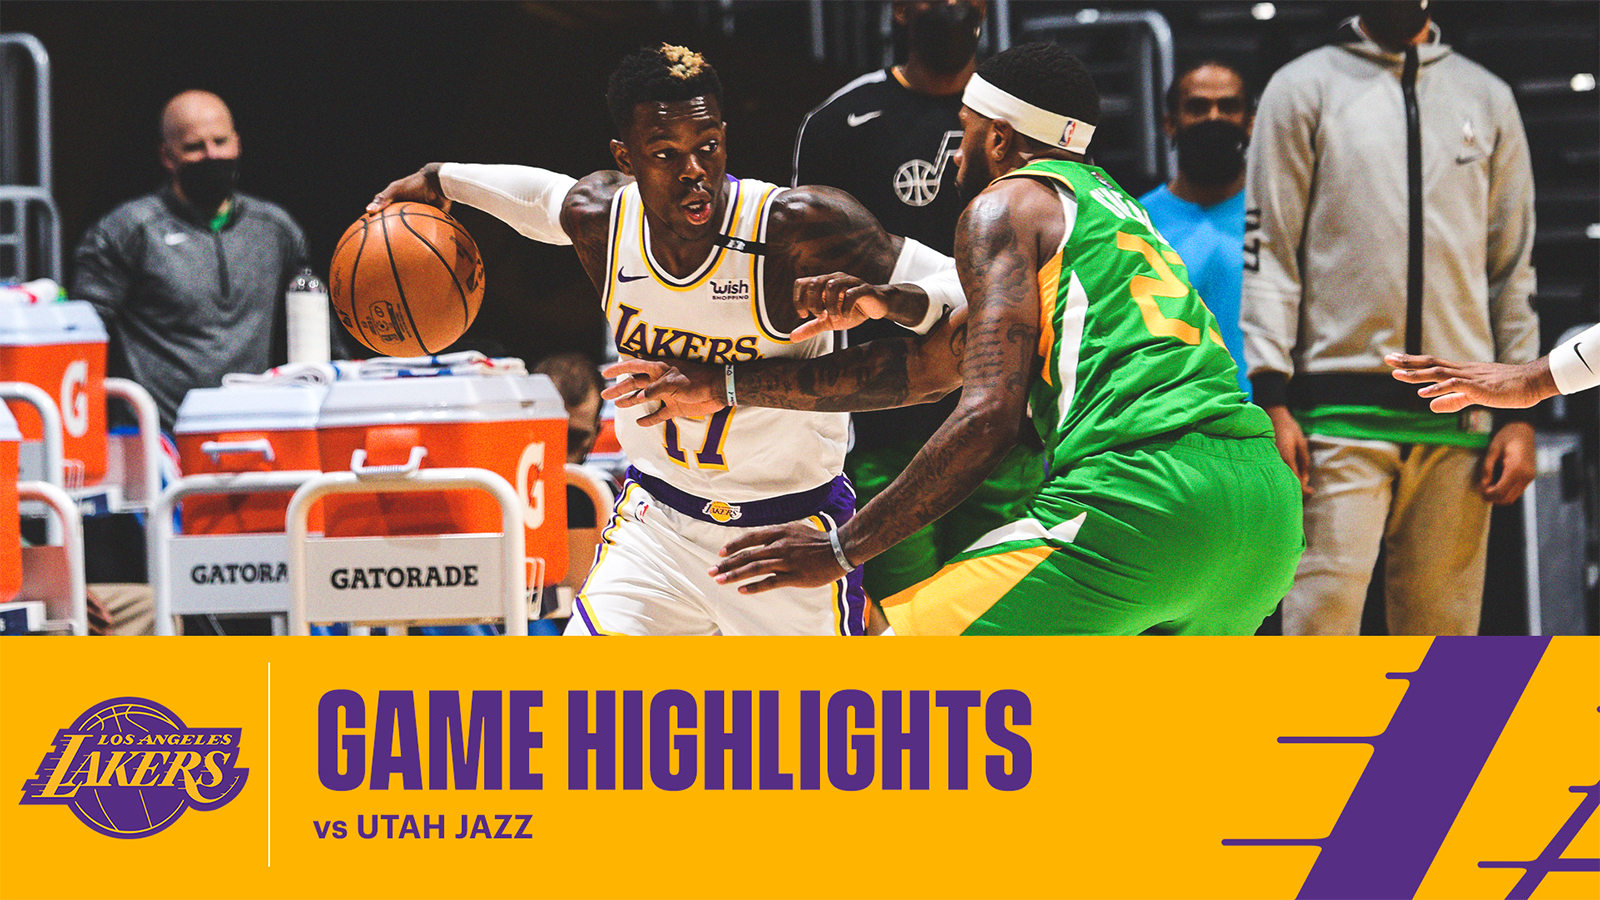 HIGHLIGHTS | Dennis Schröder (25 pts, 8 asts, 6 rebs) vs Utah Jazz